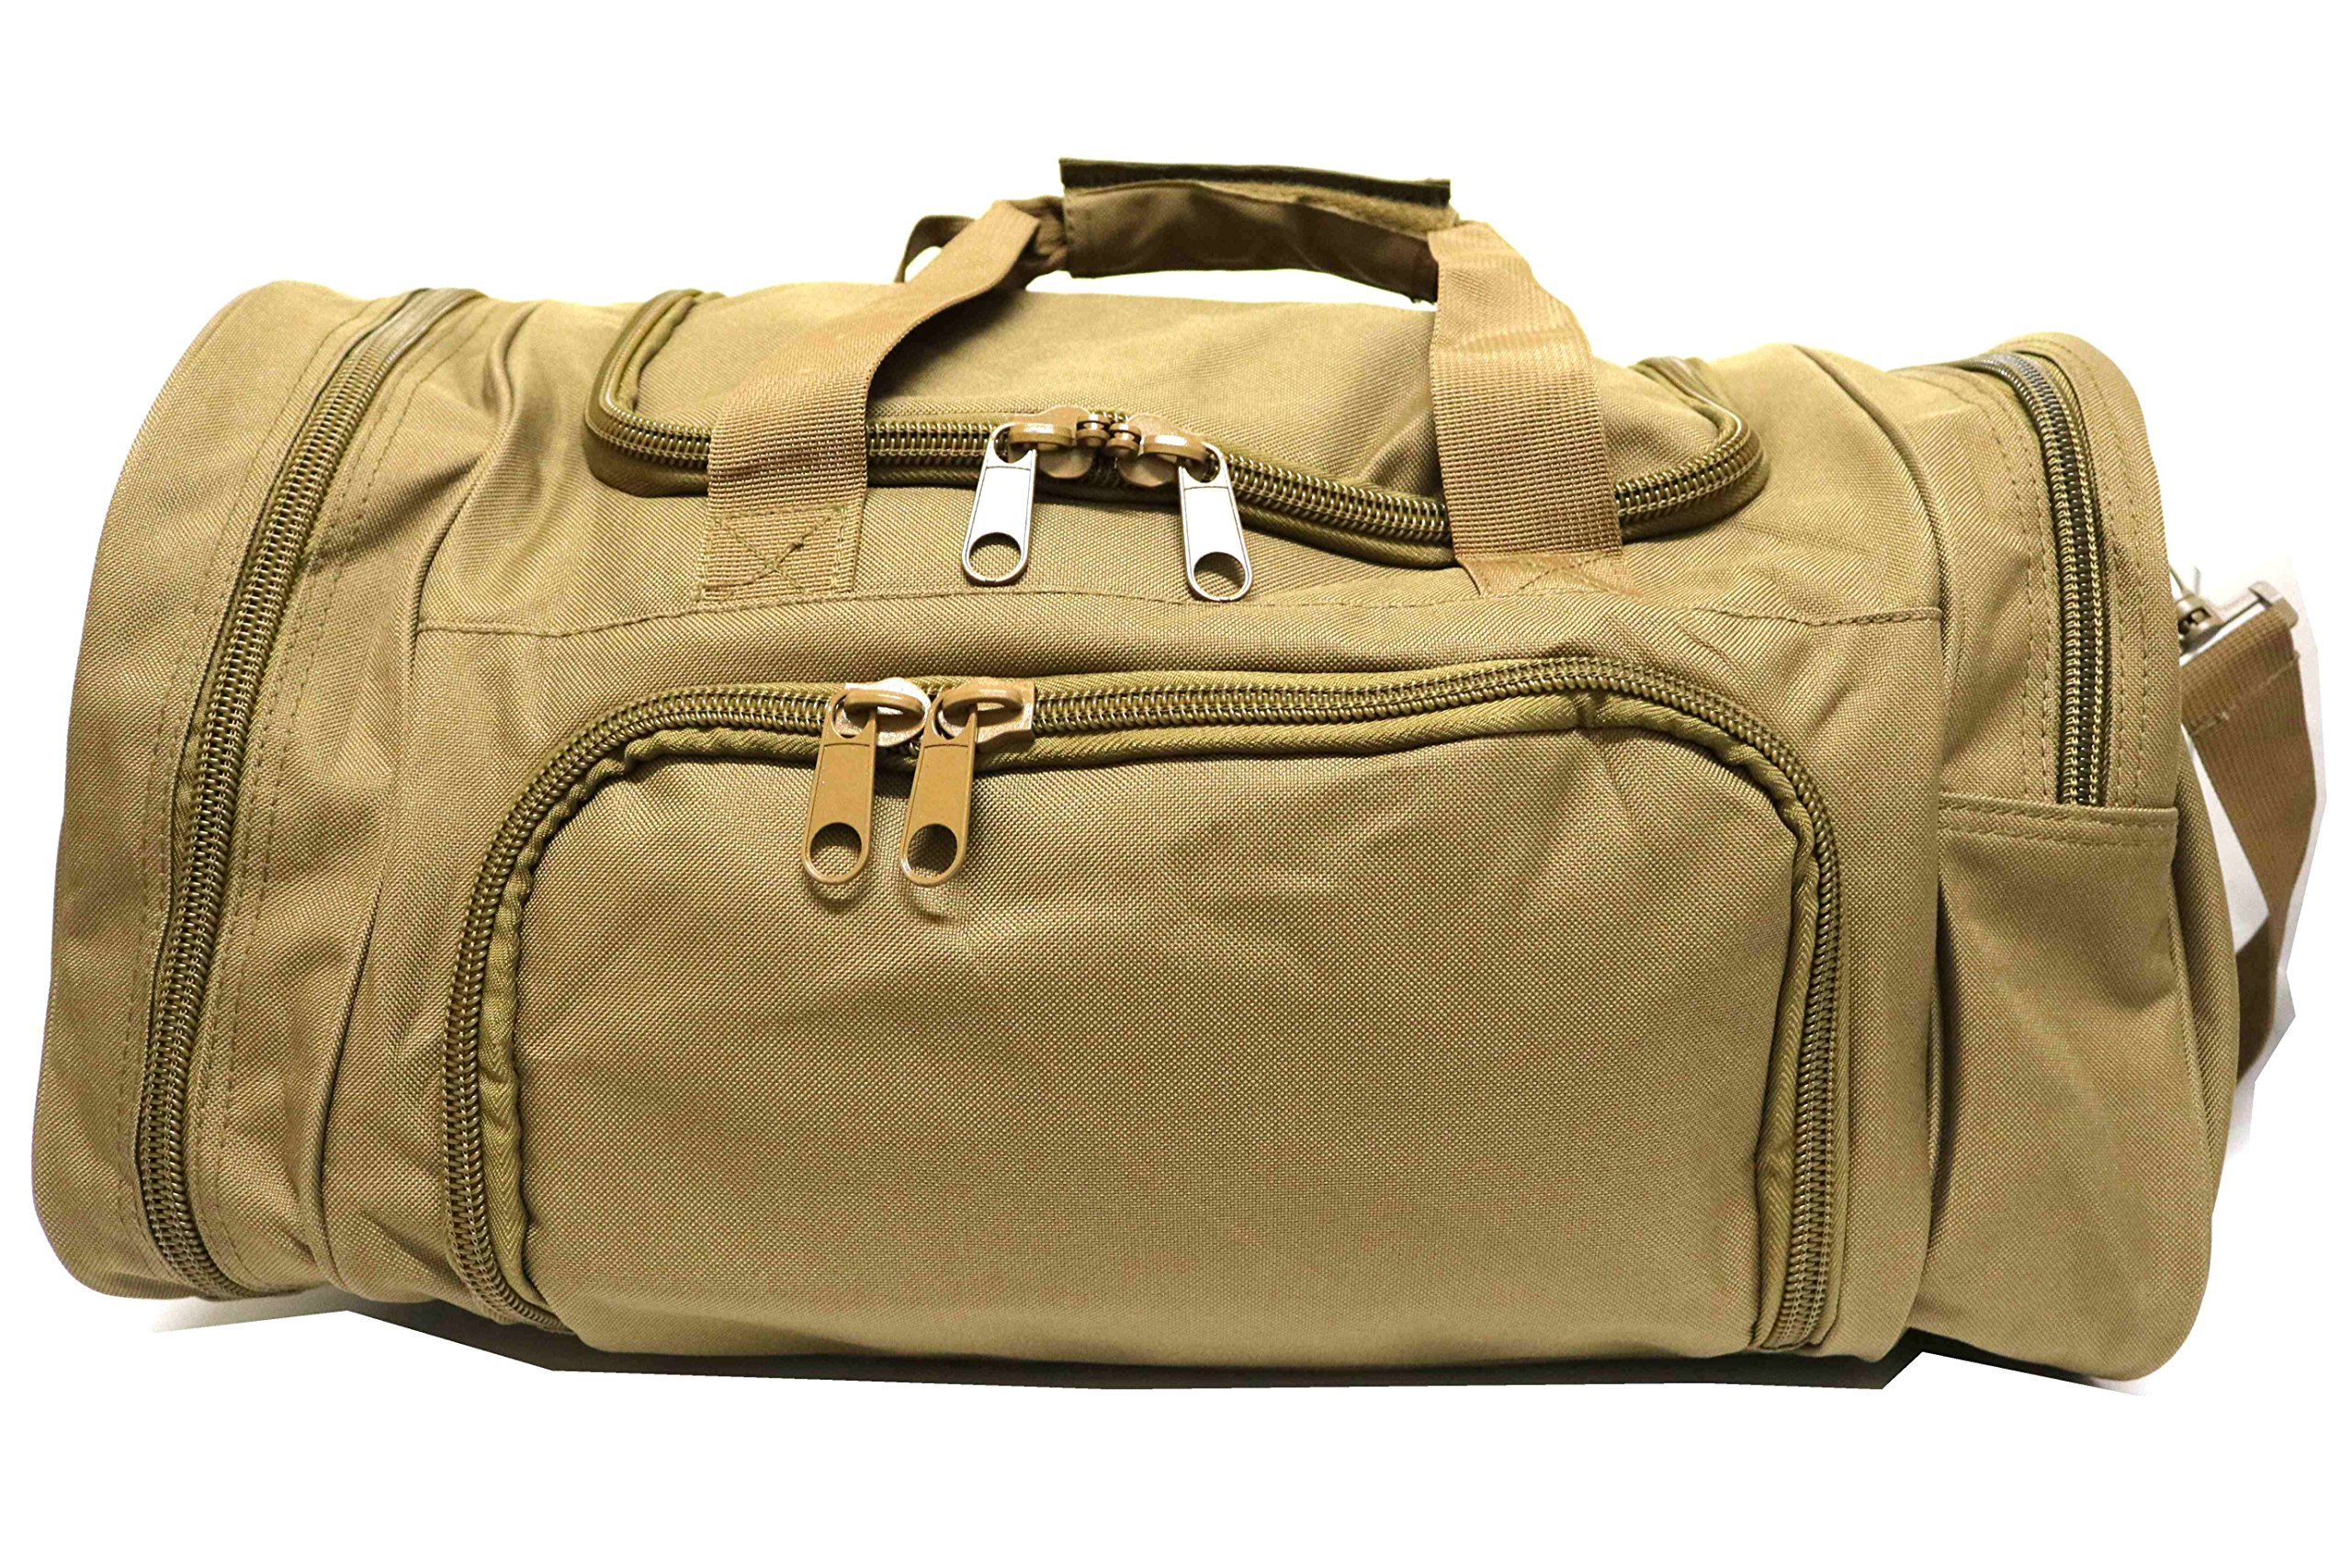 WolfWarriorX Military Tactical Duffle Bag, Large Storage Bag Luggage Duffle for Traveling, Gym, Vacation, Hiking & Trekking (Tan)